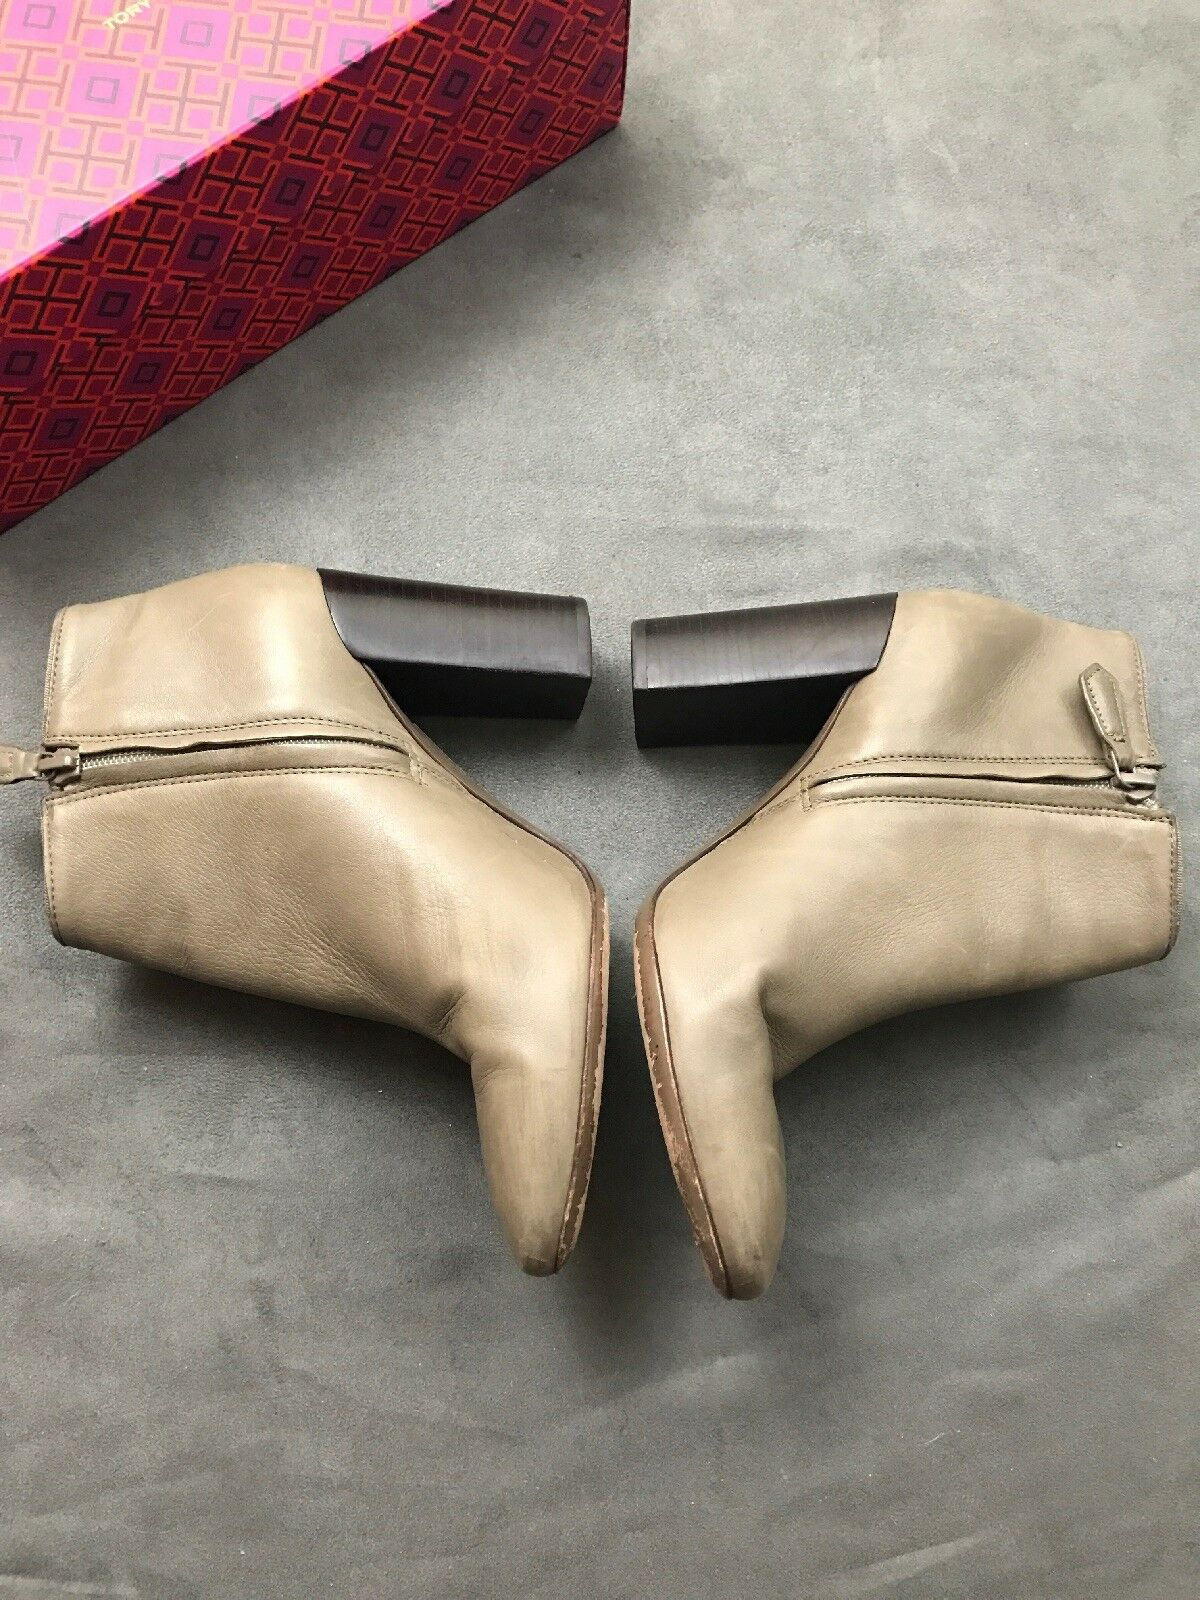 TORY Ankle BURCH Bowie Ankle TORY Bootie Slip On Taupe Fango Leder Sabe Stiefel Sz 7 #E7 d72fda